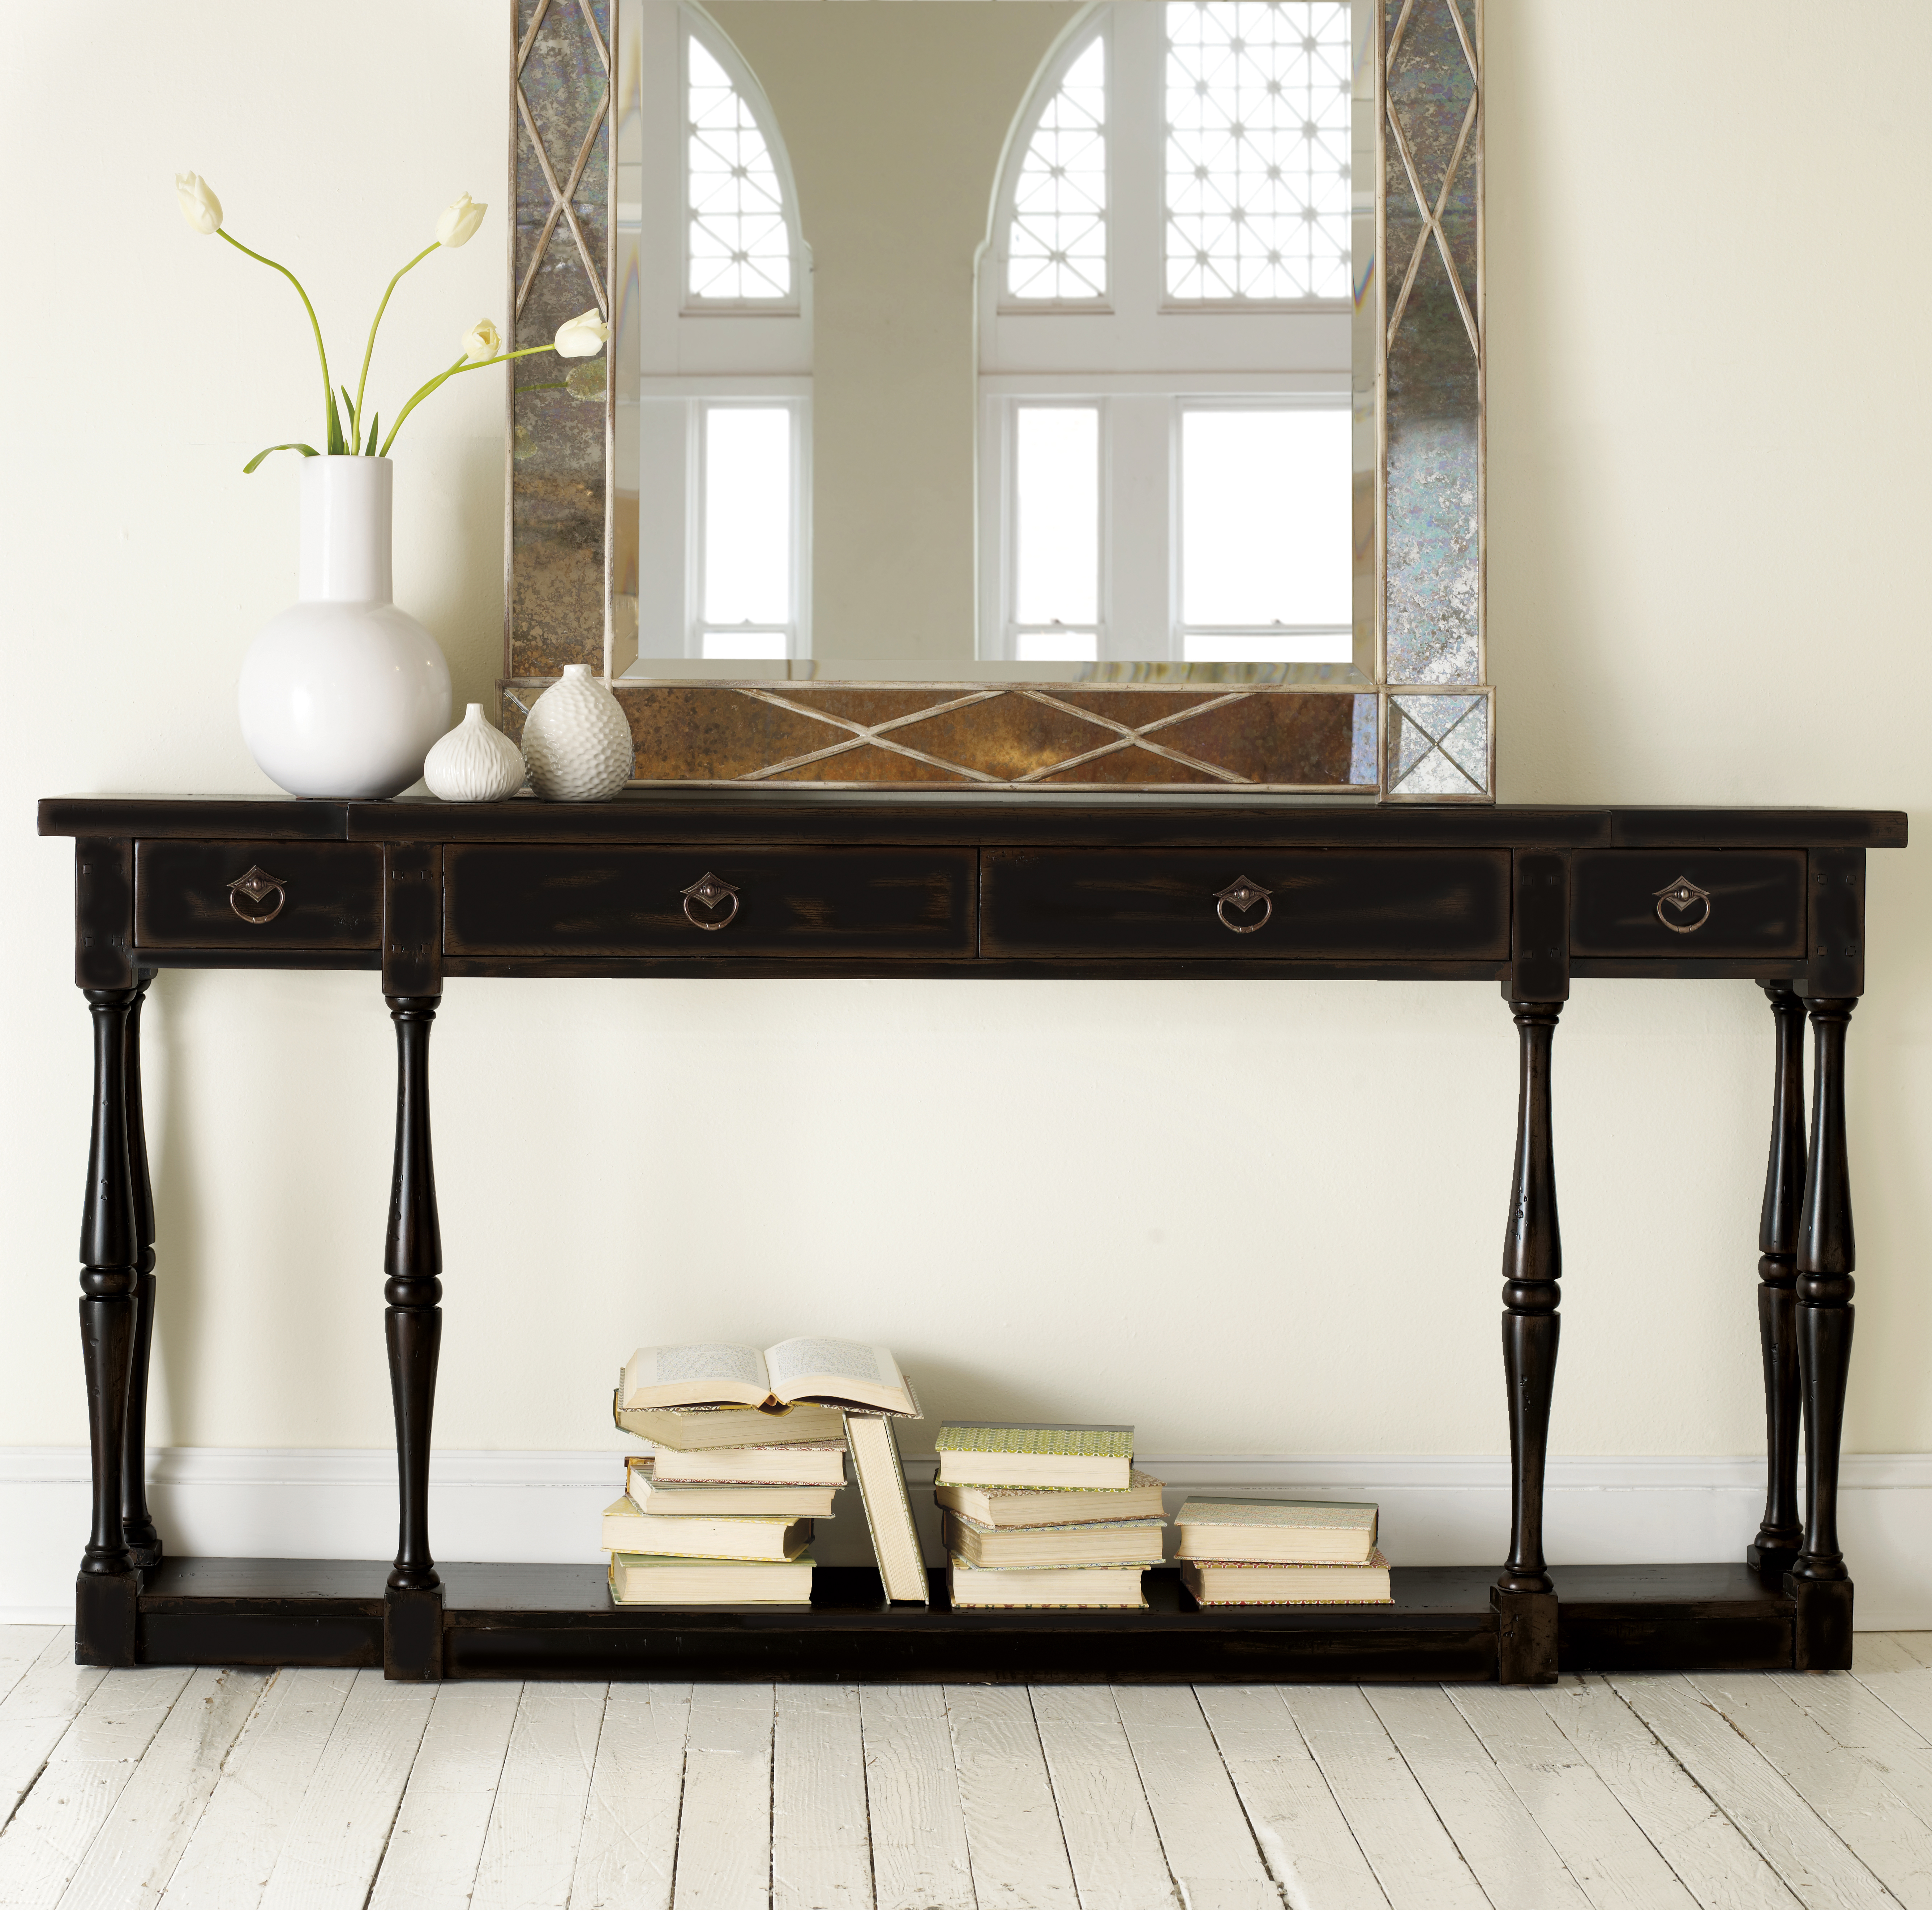 Hooker furniture ebony 4 drawer thin console hayneedle geotapseo Image collections